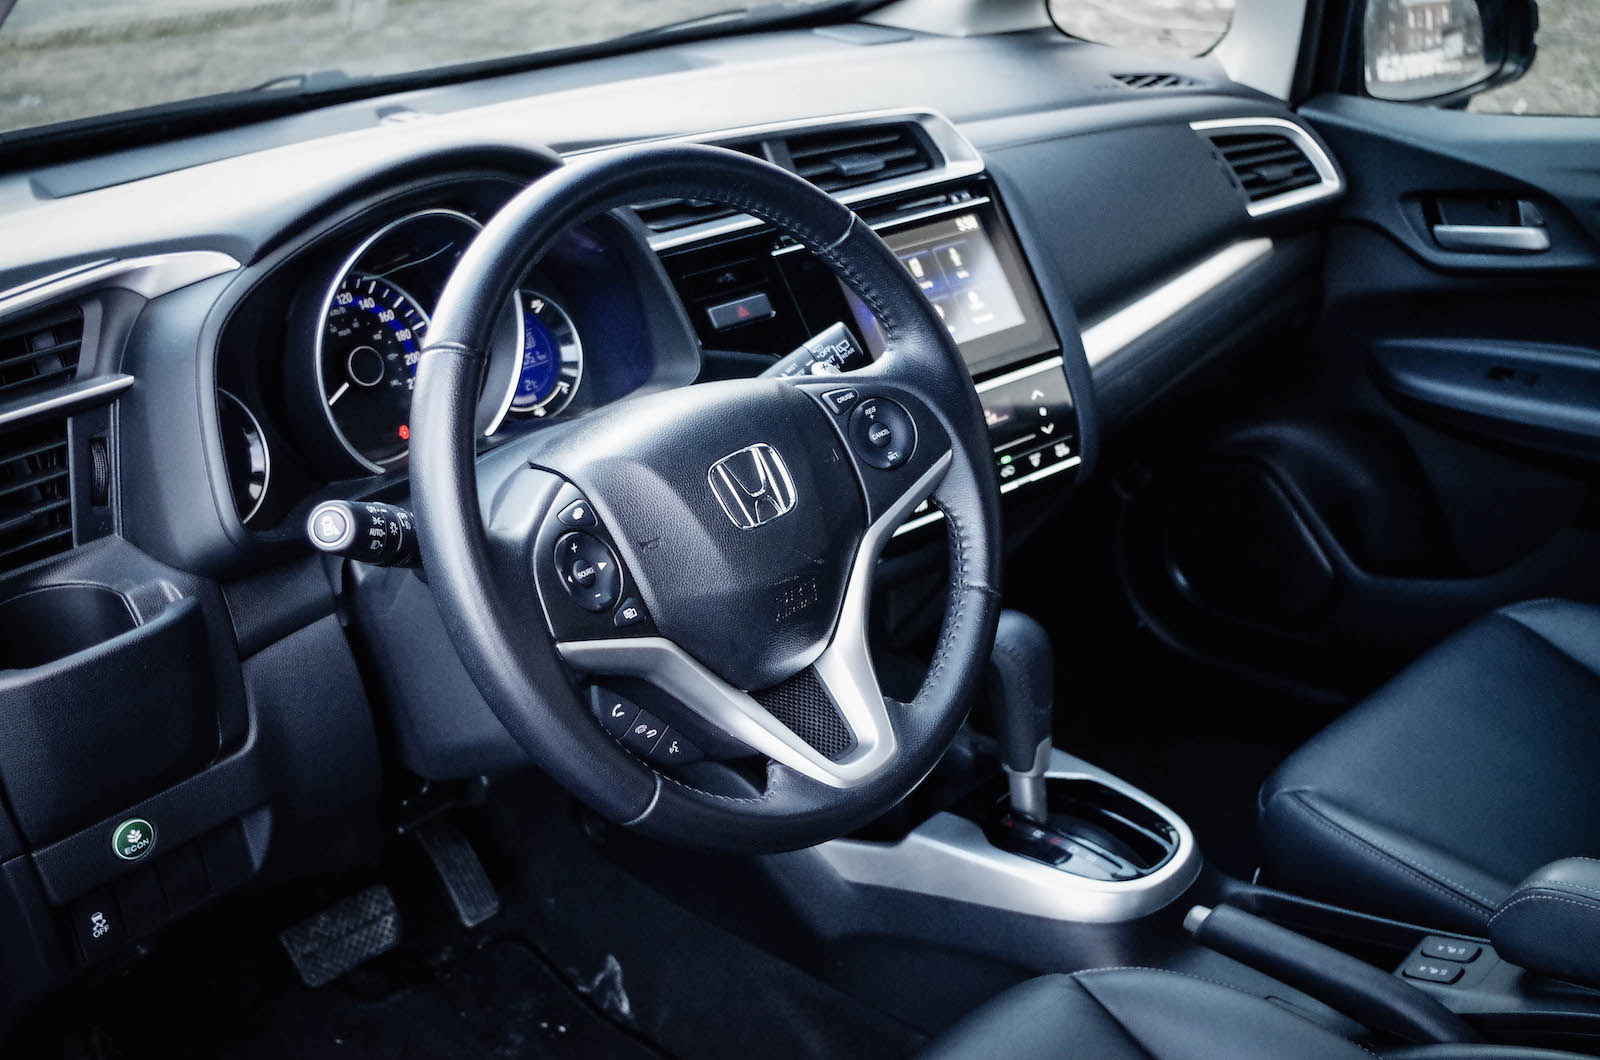 Honda Fit Interior on Honda Vtec Engine Review